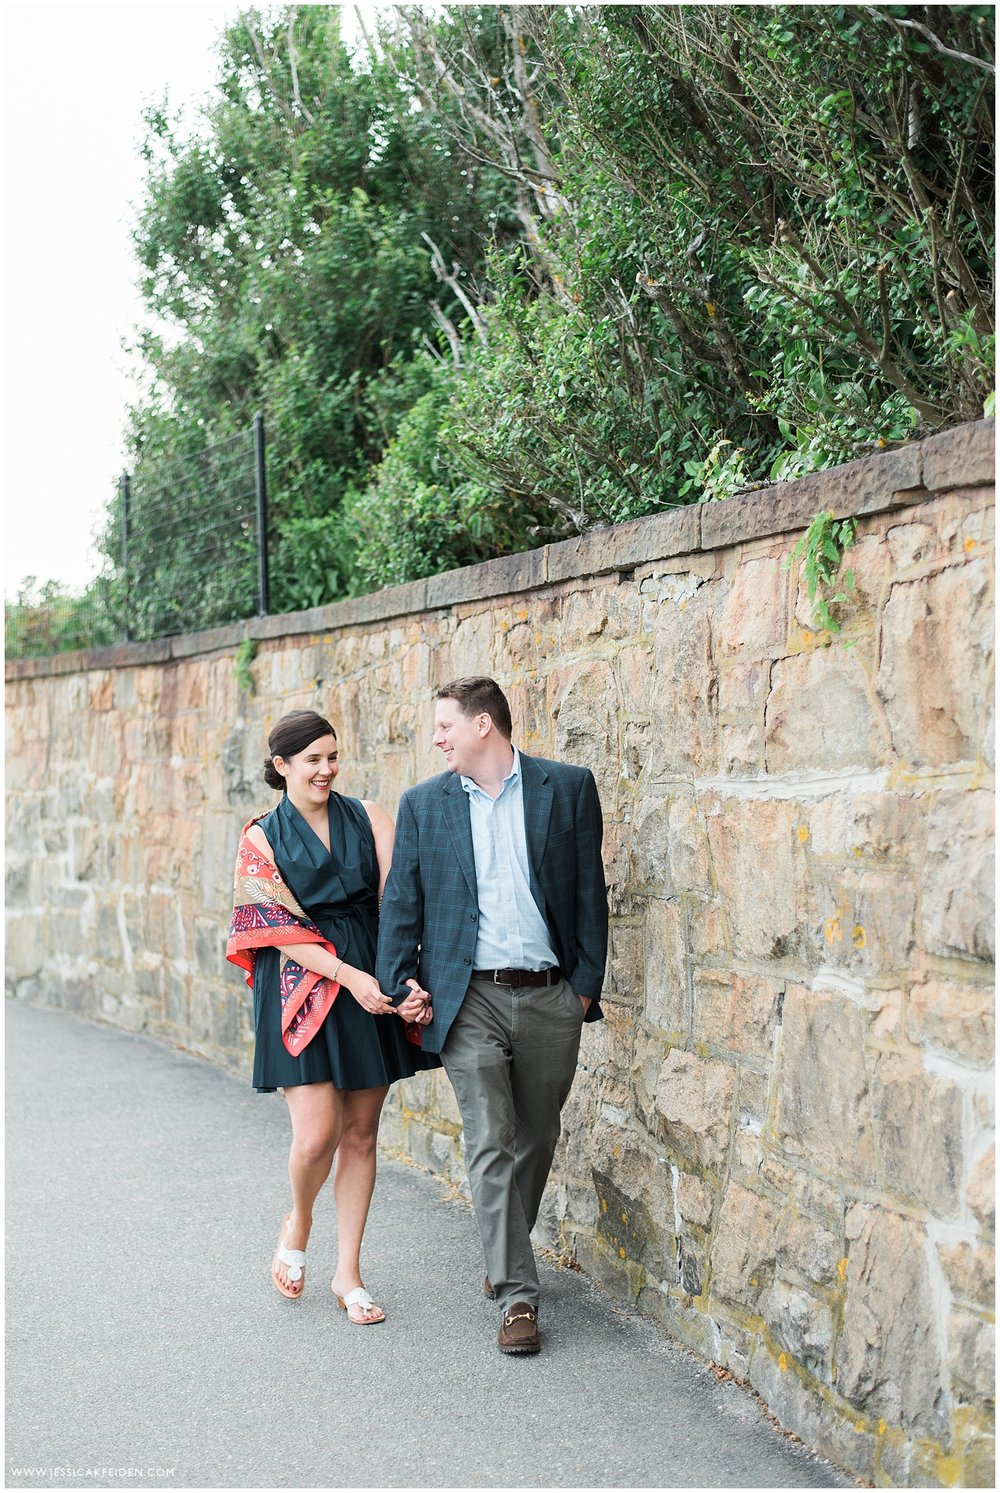 Jessica K Feiden Photography_Castle Hill Lighthouse Newport Engagement Session Photographer_0001.jpg